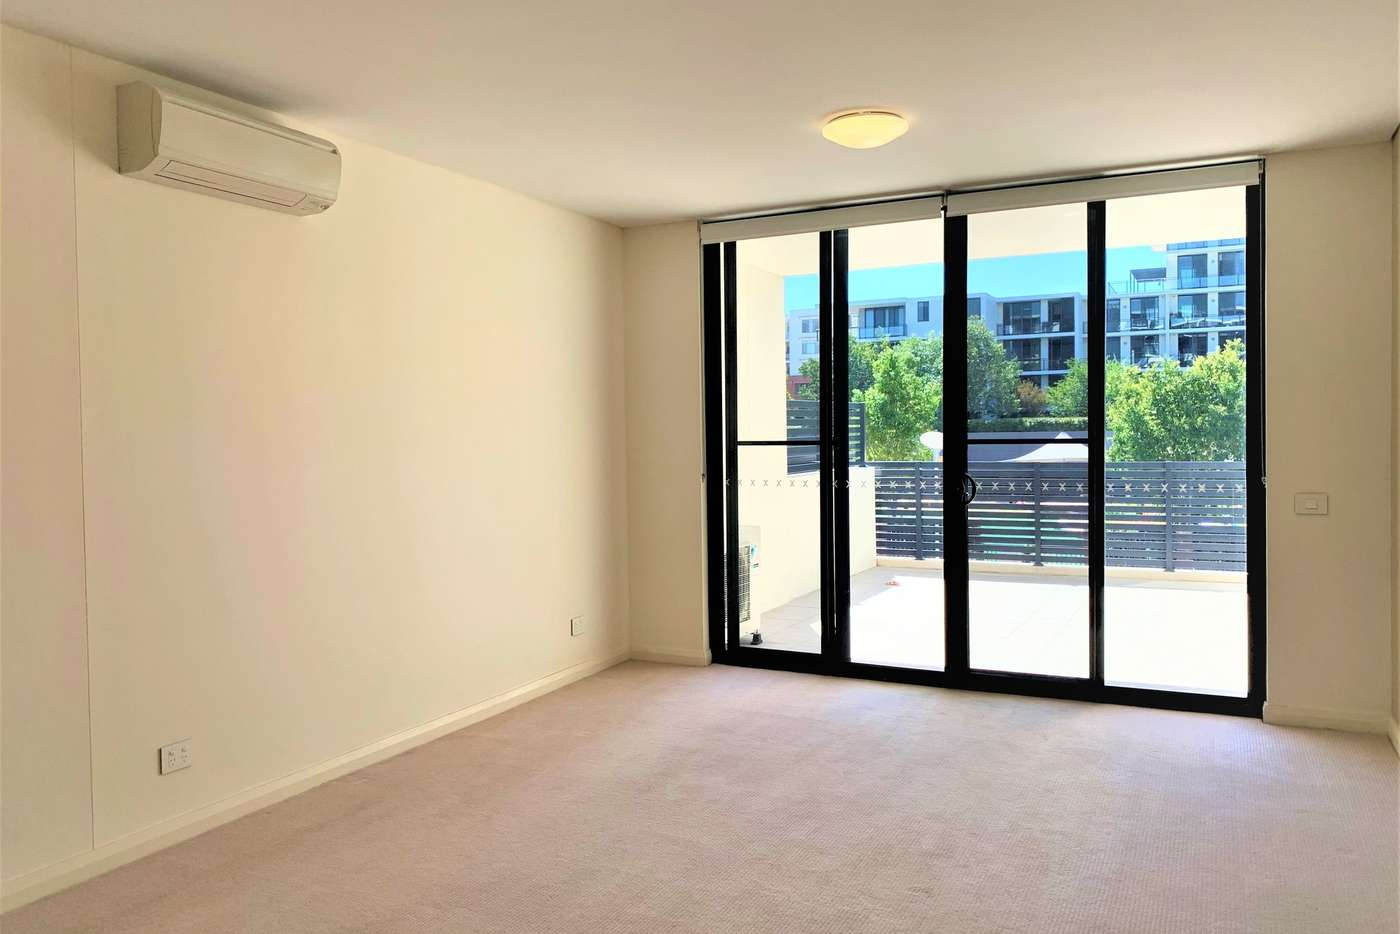 Main view of Homely apartment listing, 208/18 Corniche Drive, Wentworth Point NSW 2127